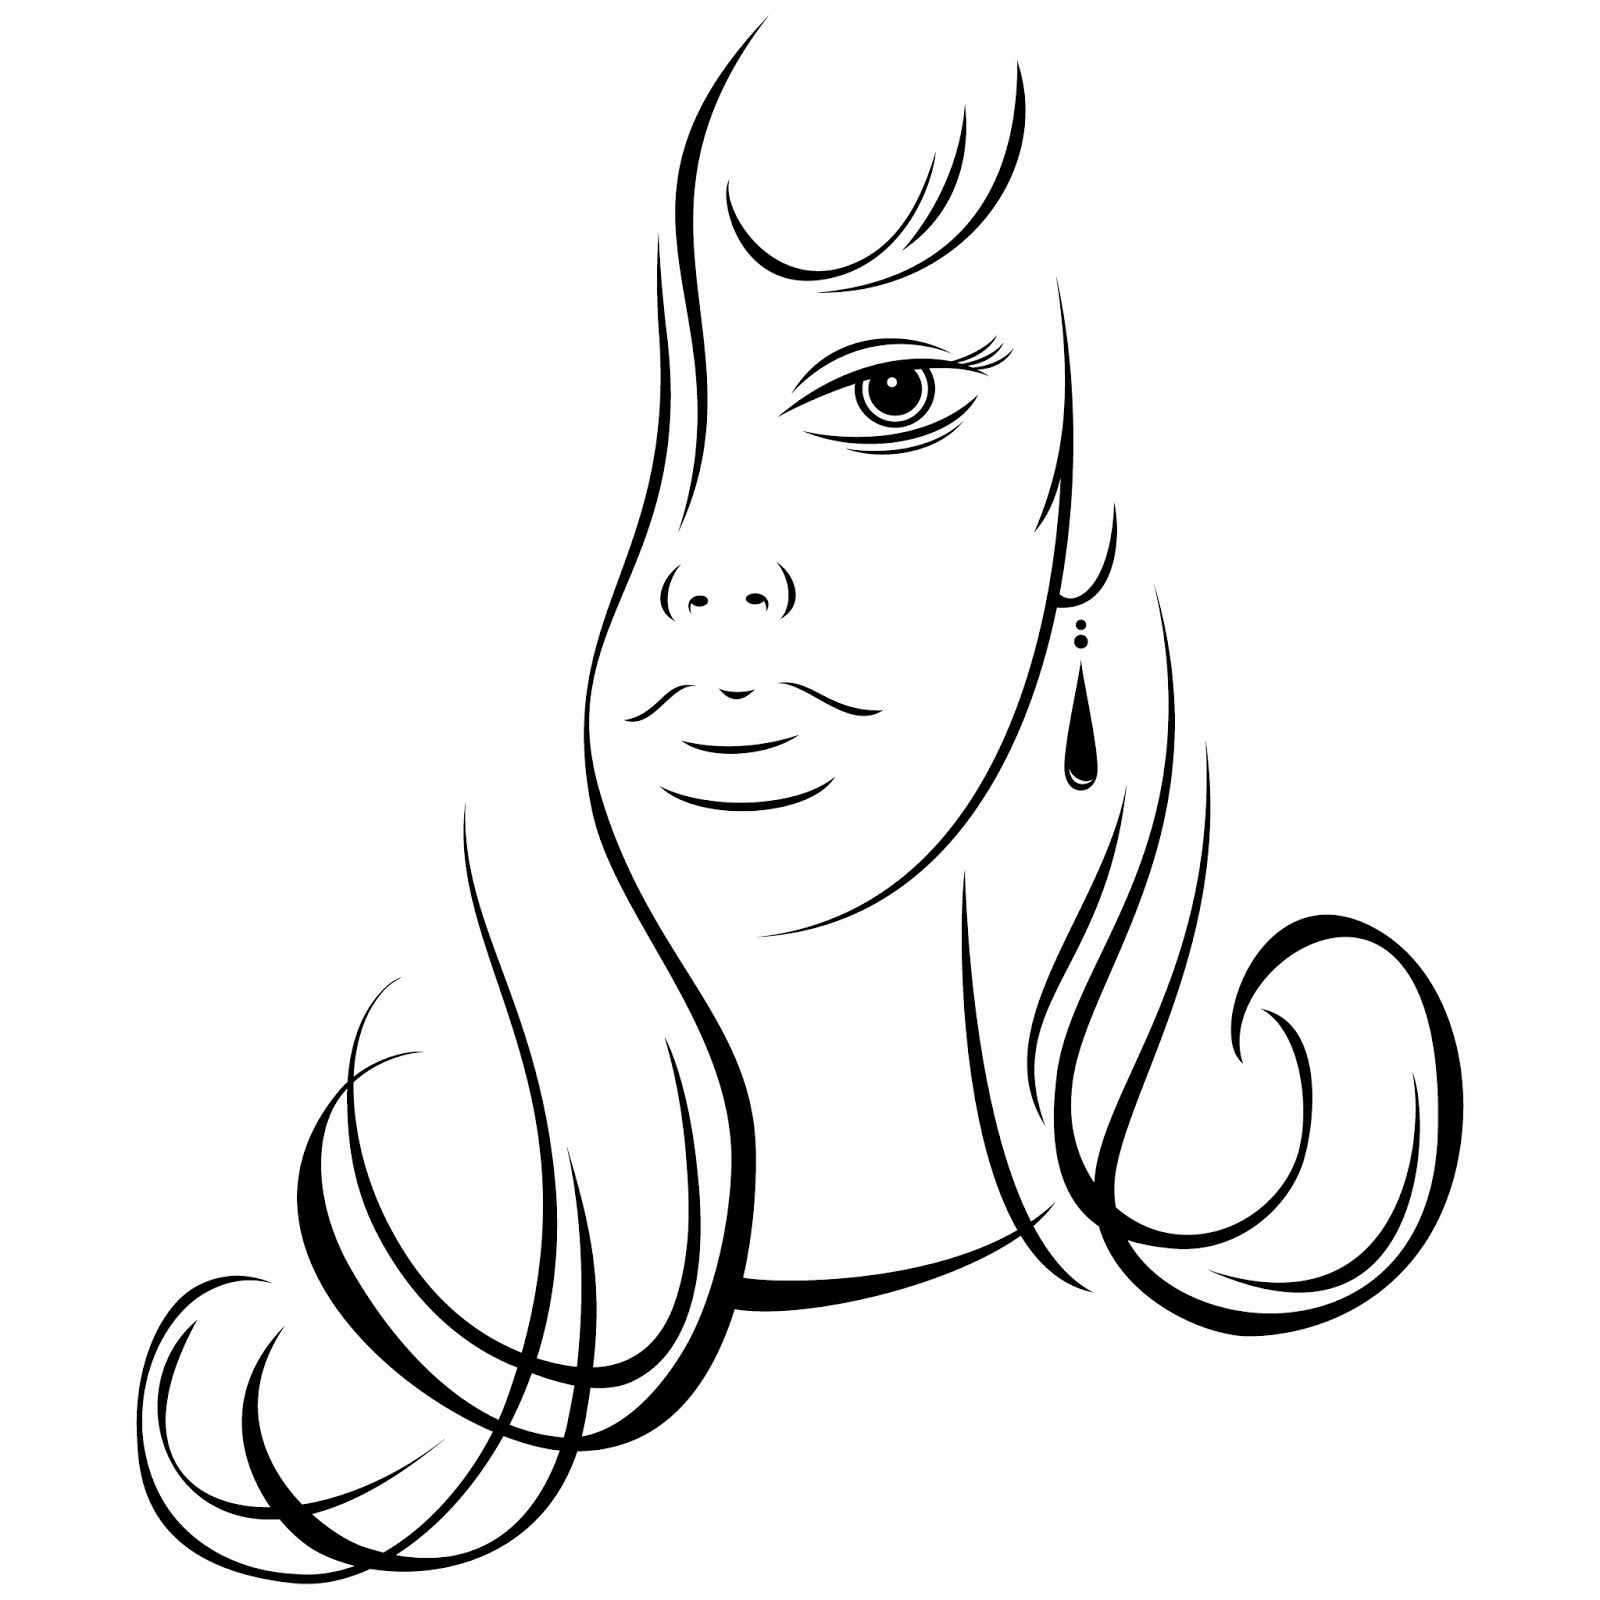 hight resolution of free women cliparts designs download free clip art free clip art jpg 1600x1600 clipart woman sketch